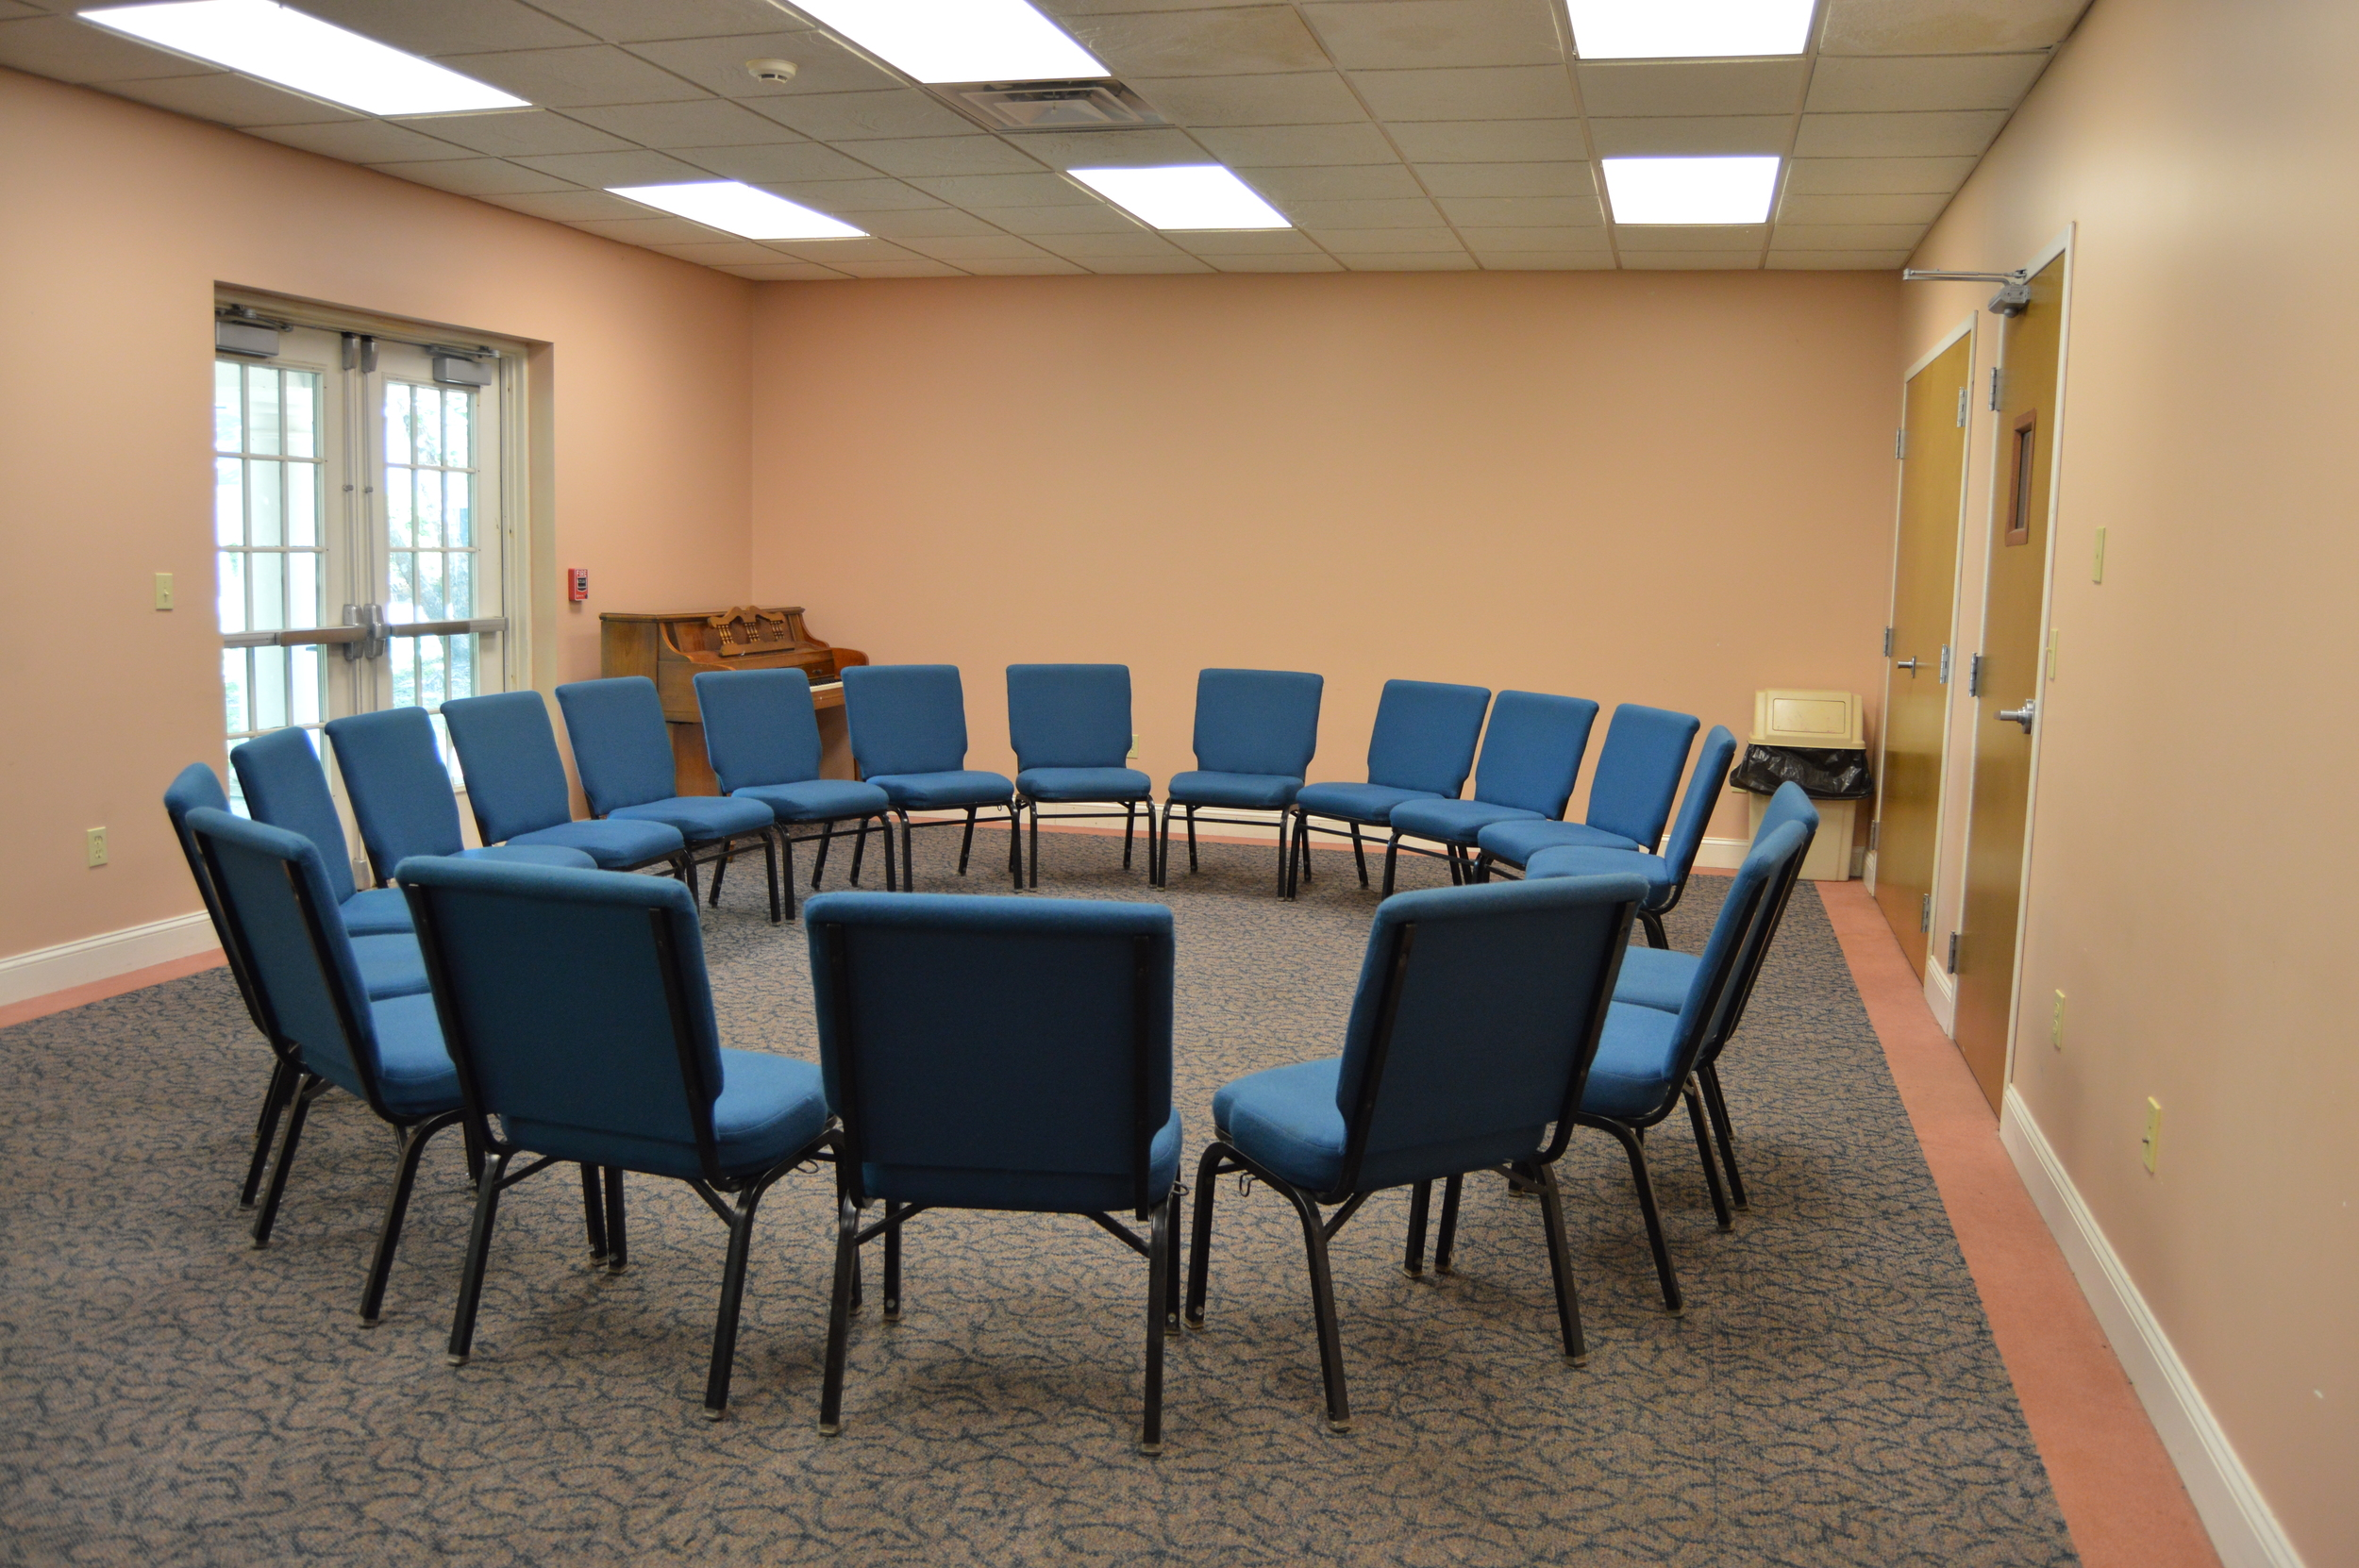 STC Classroom, Prepared for Small Group Discussions